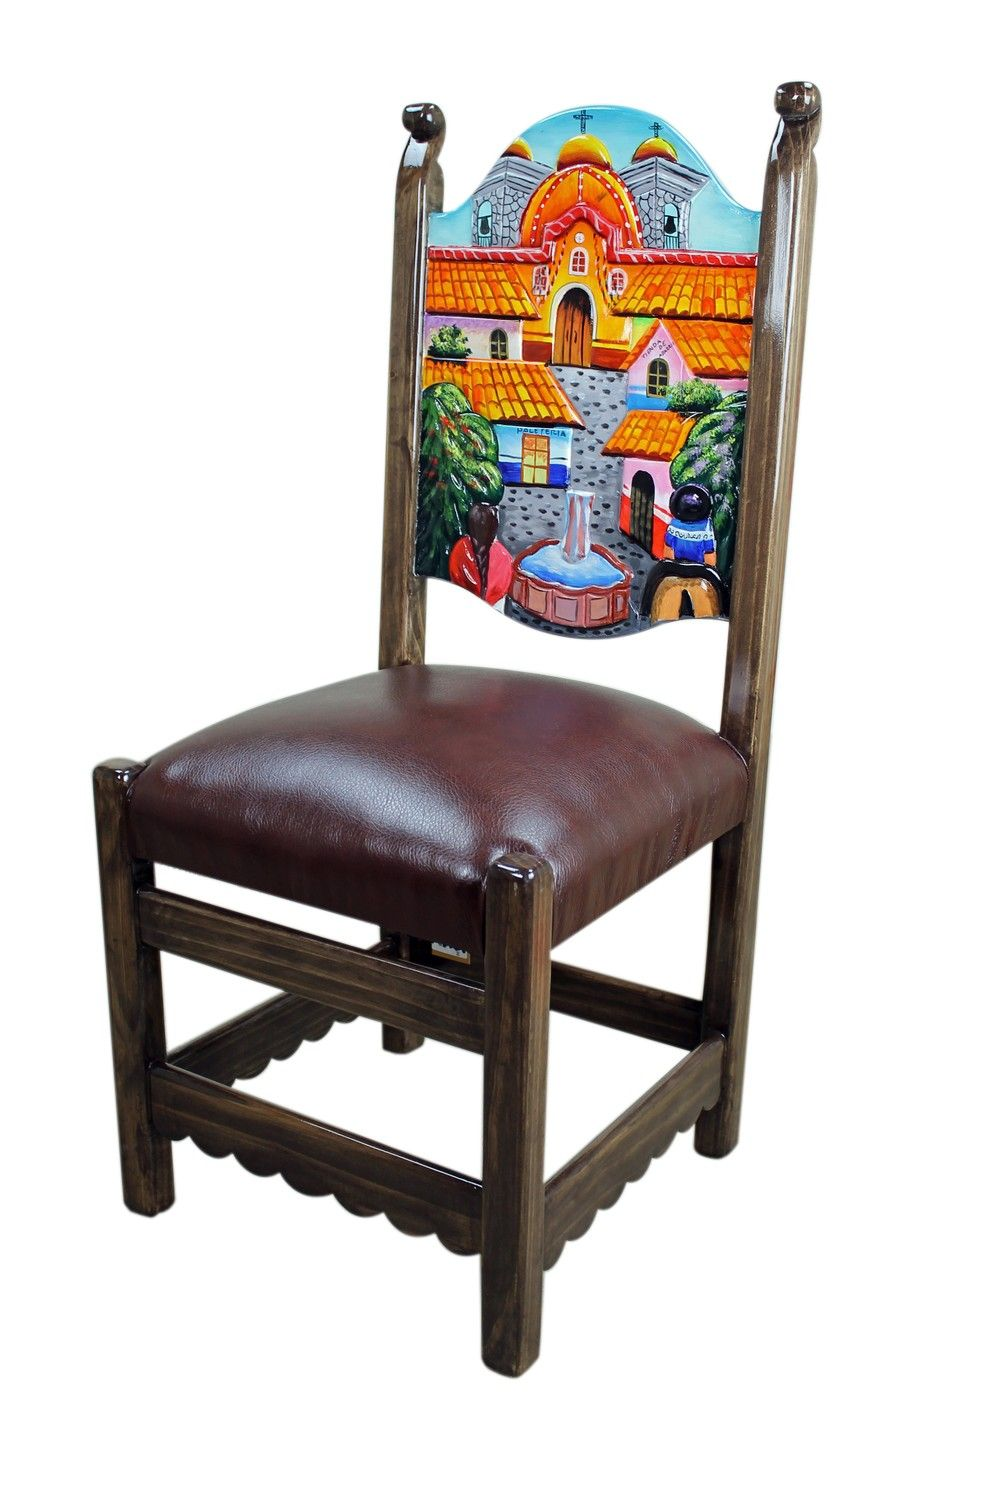 Rustic Mexican Pueblito Painted Chair Handpaintedfurniture Hand Chairs Funky Furniture Upcycled